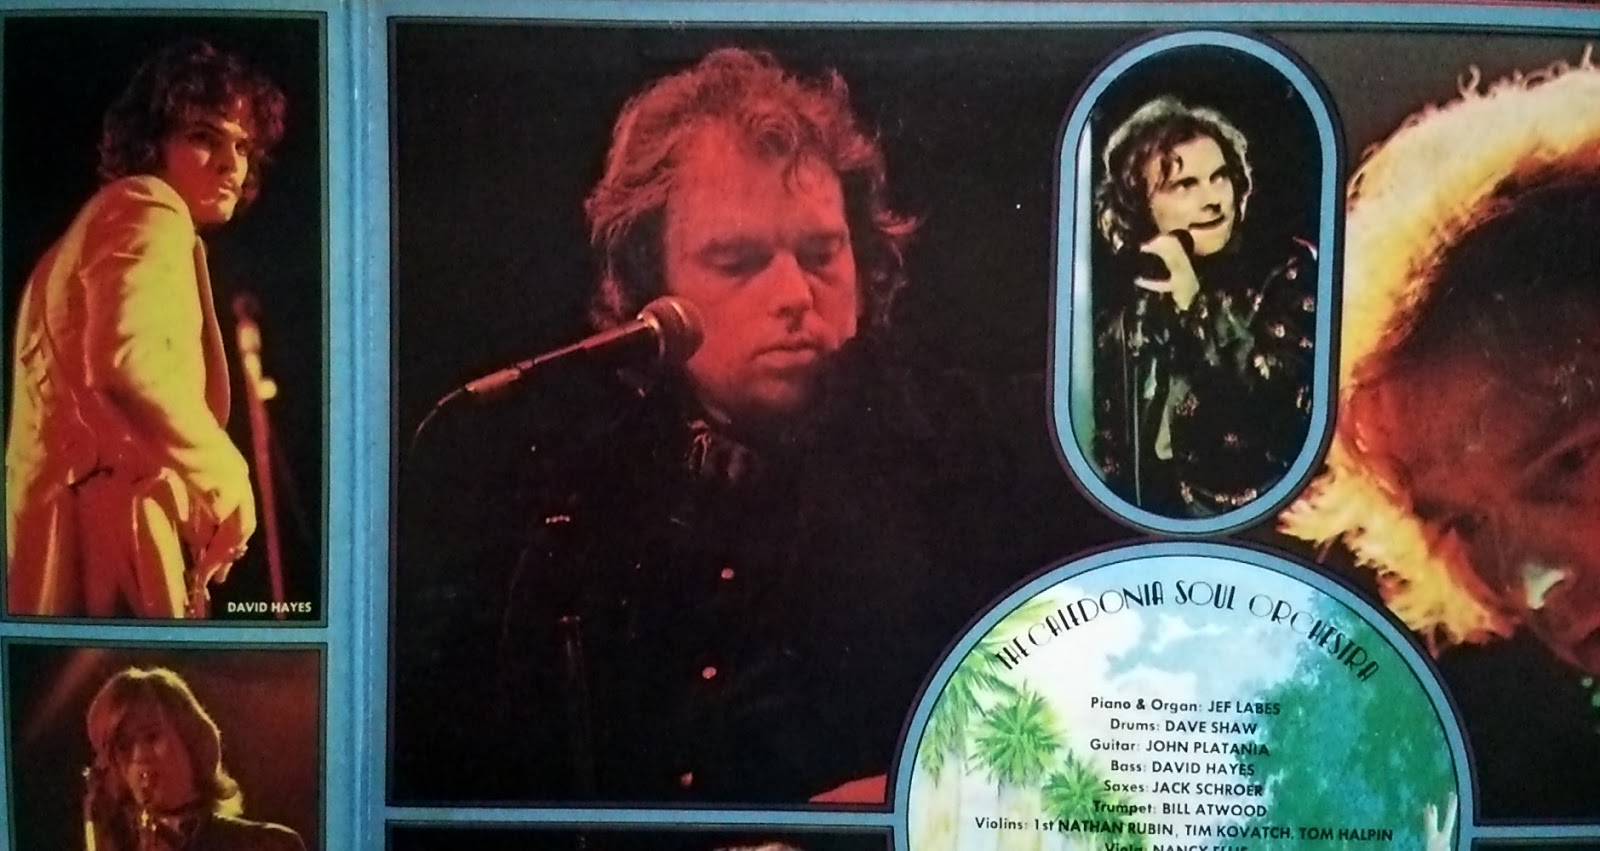 Van Morrison ‎ヴァン・モリソン - It's Too Late To Stop Now 魂の道のり - inside2